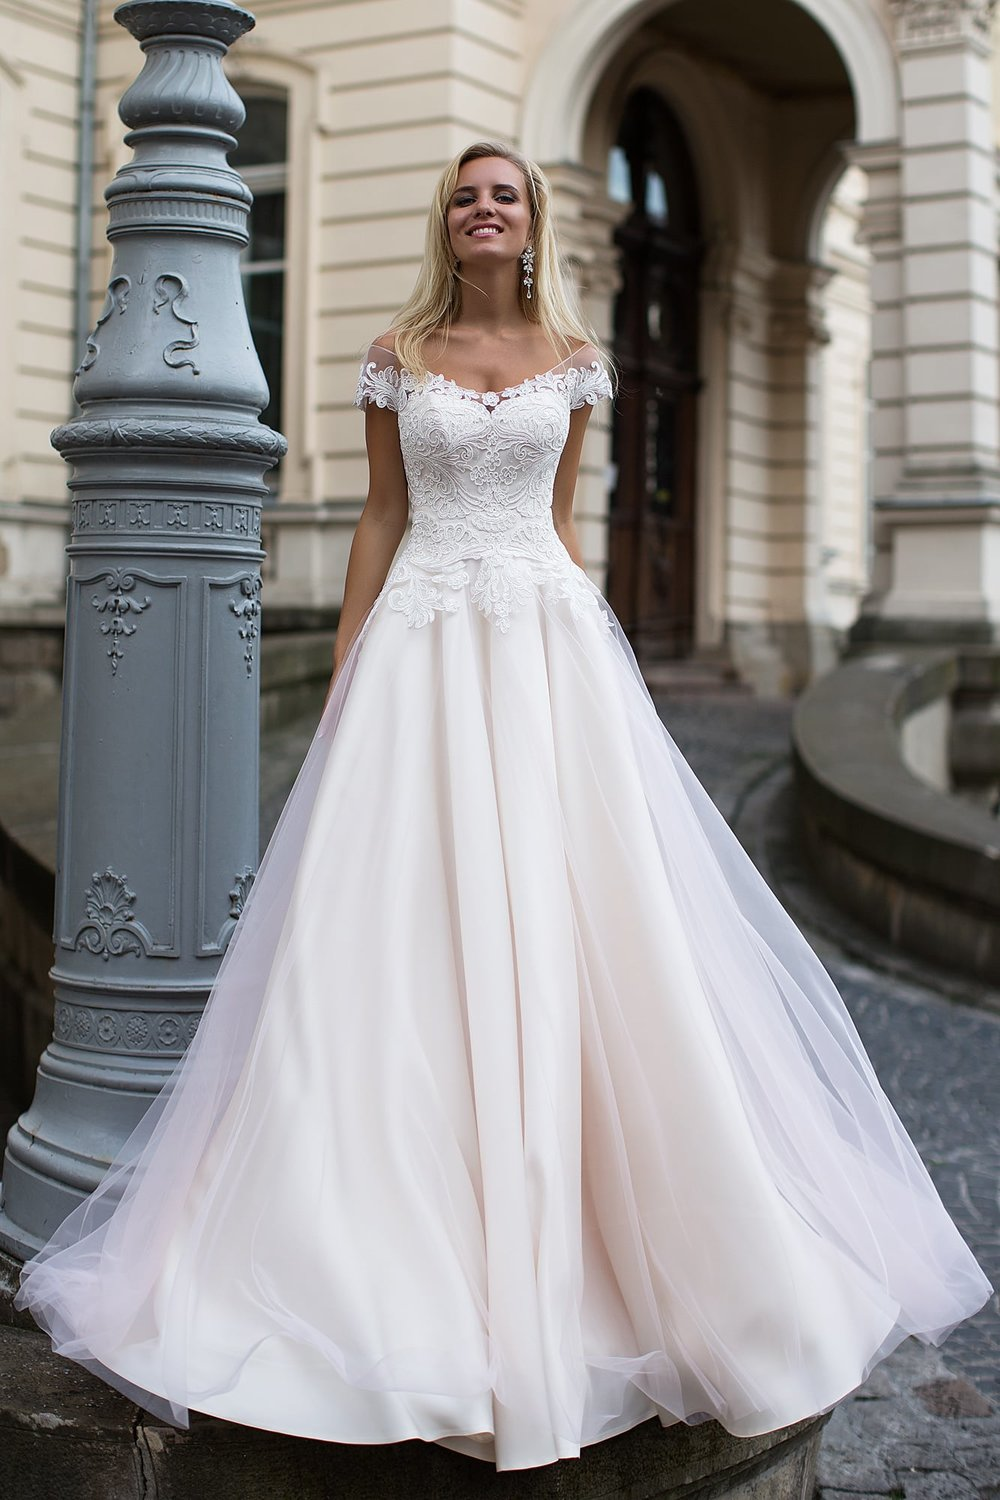 DOLCHE wedding dress $800